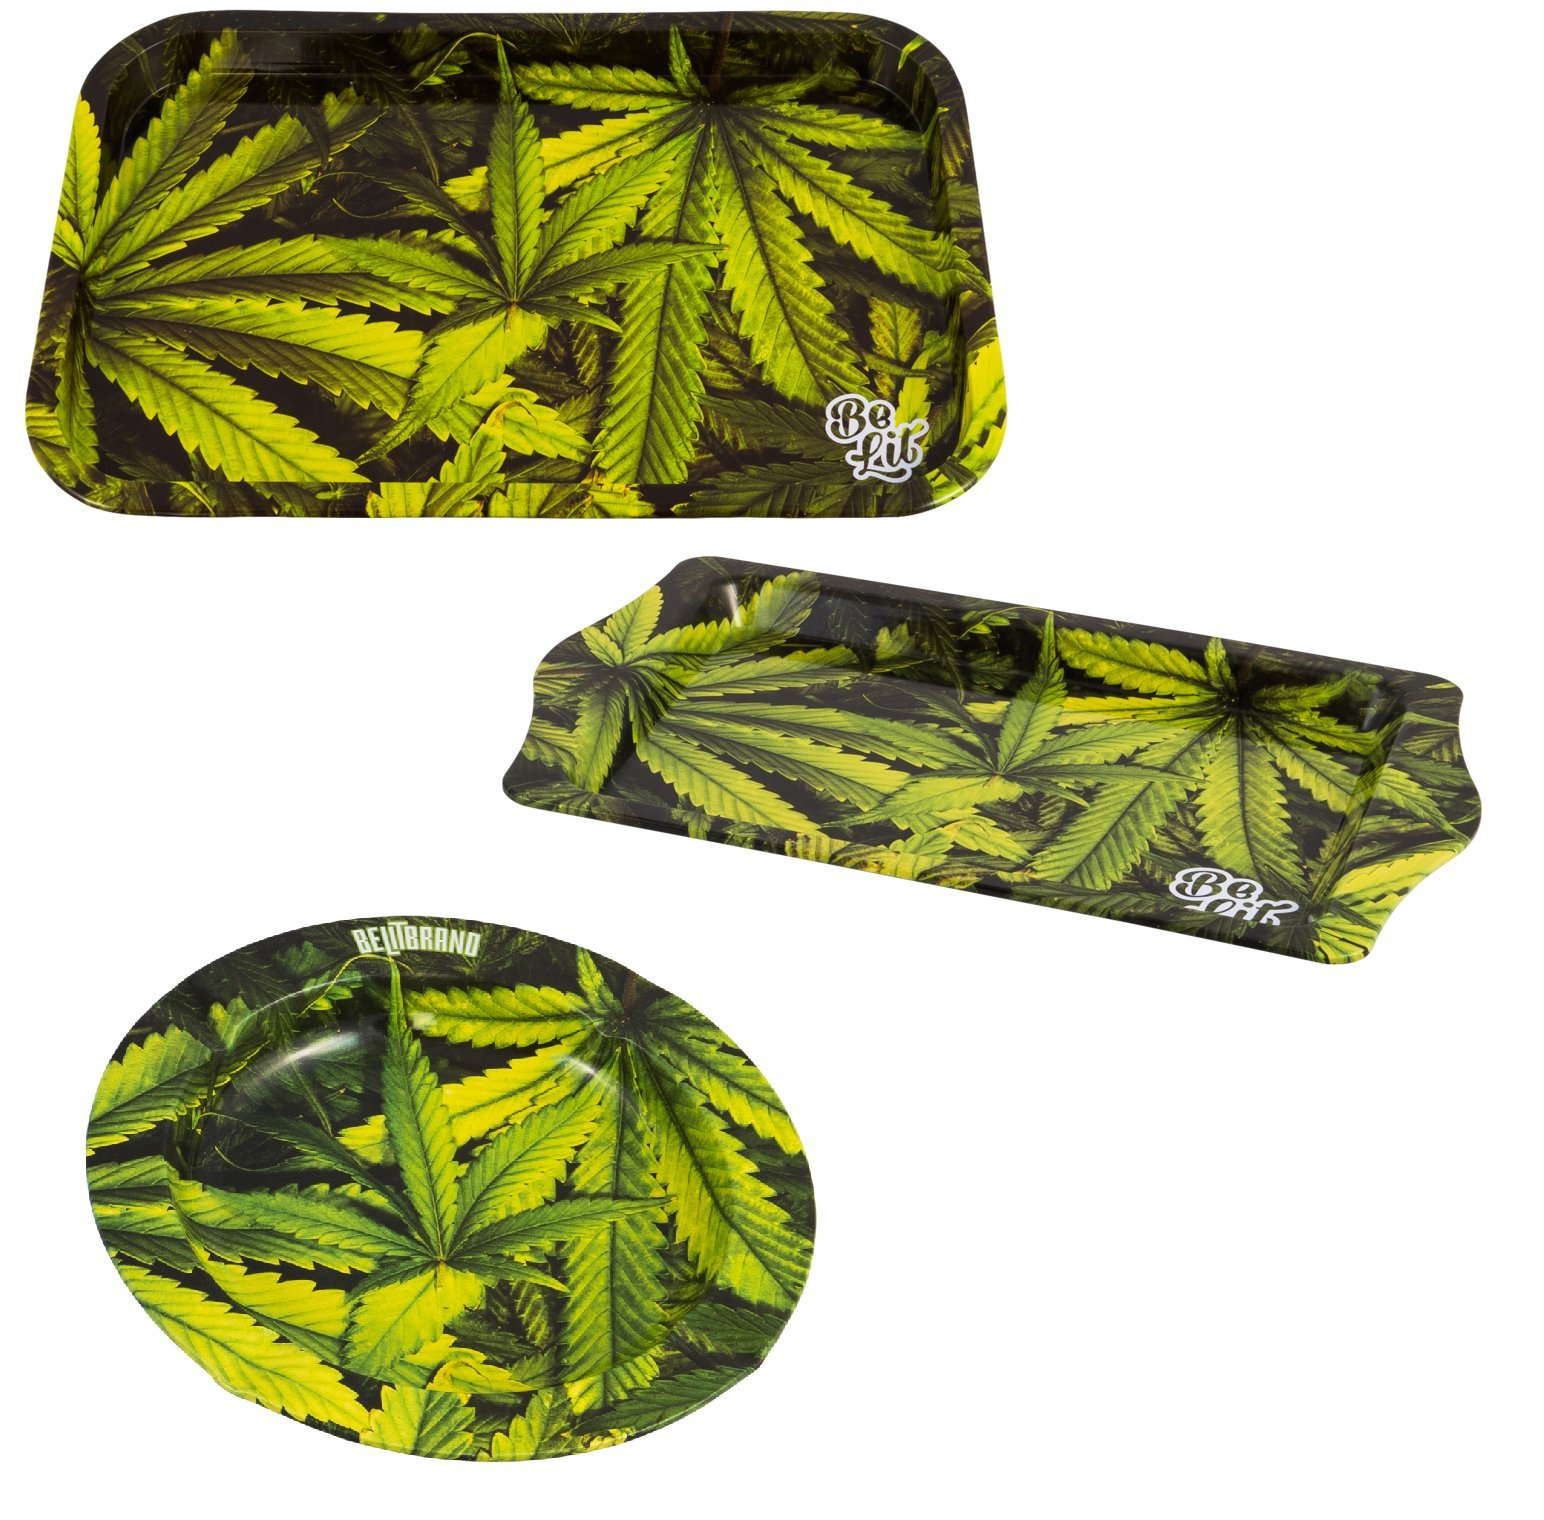 BE LIT BRAND ROLLING TRAYS (LEAFY BUNDLE- 1 MEDIUM, 1 TRAVEL, 1 ASHTRAY)